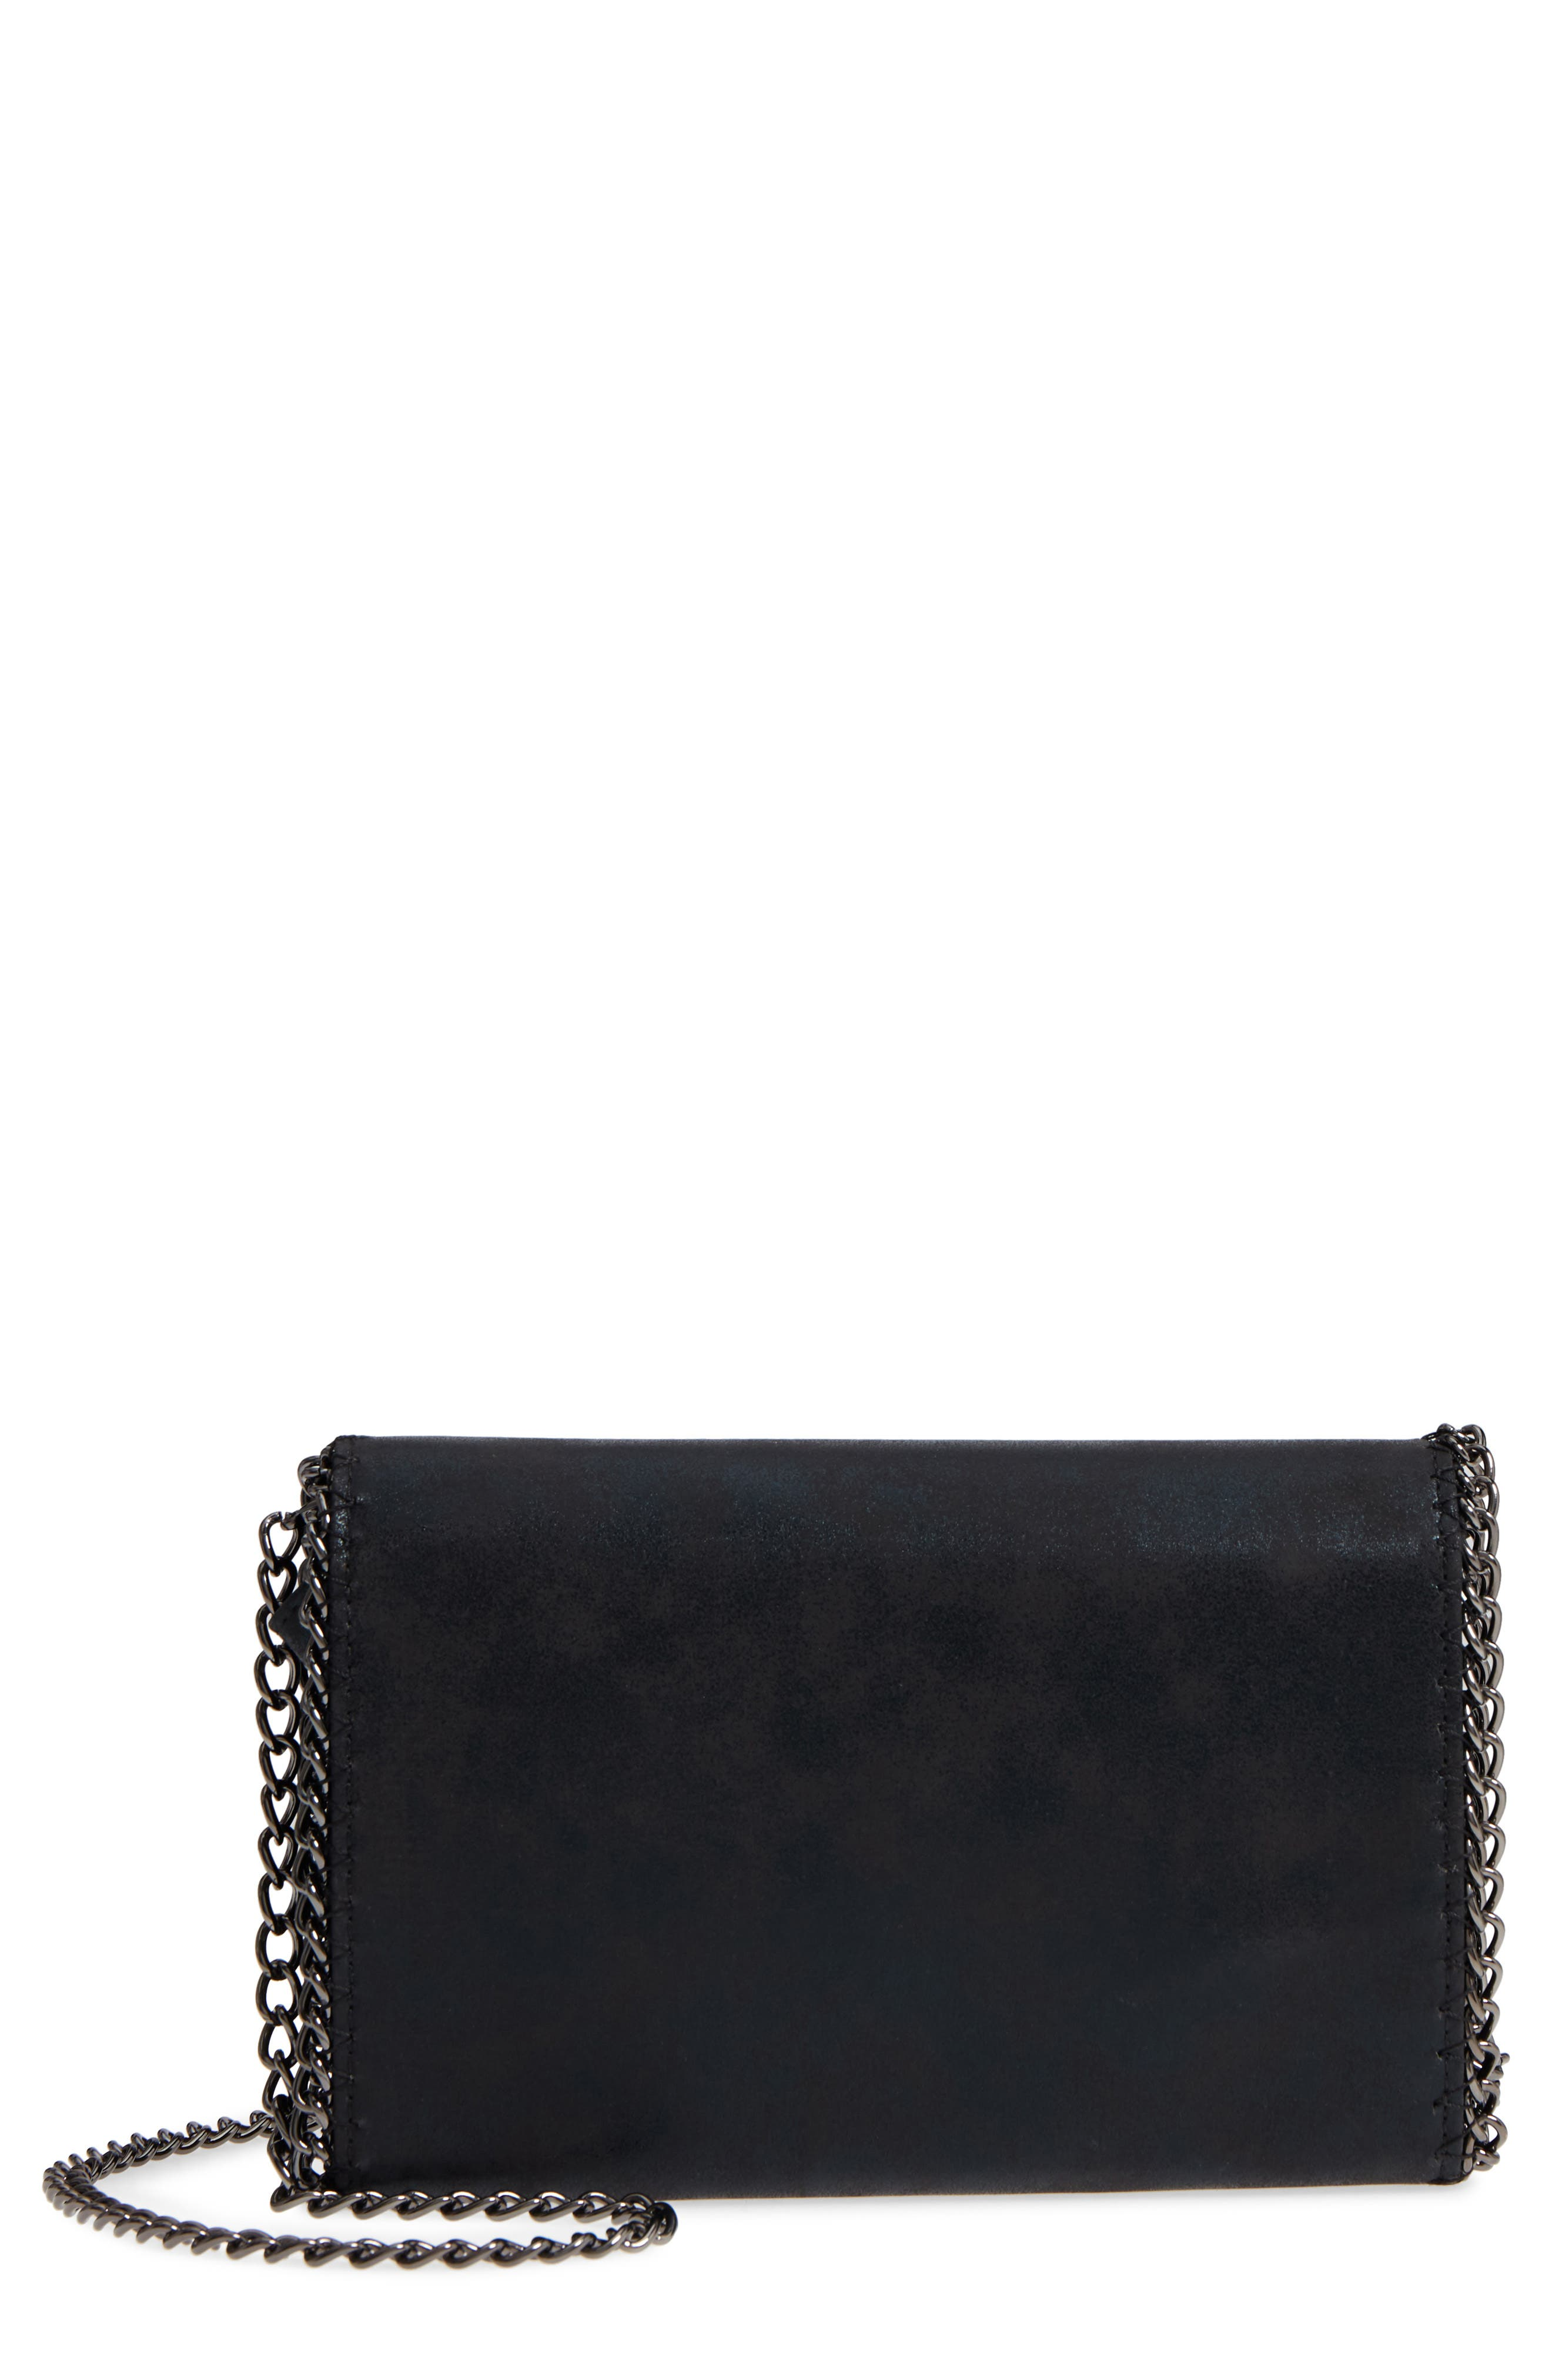 CHELSEA28 Faux Leather Wallet on a Chain, Main, color, BLACK